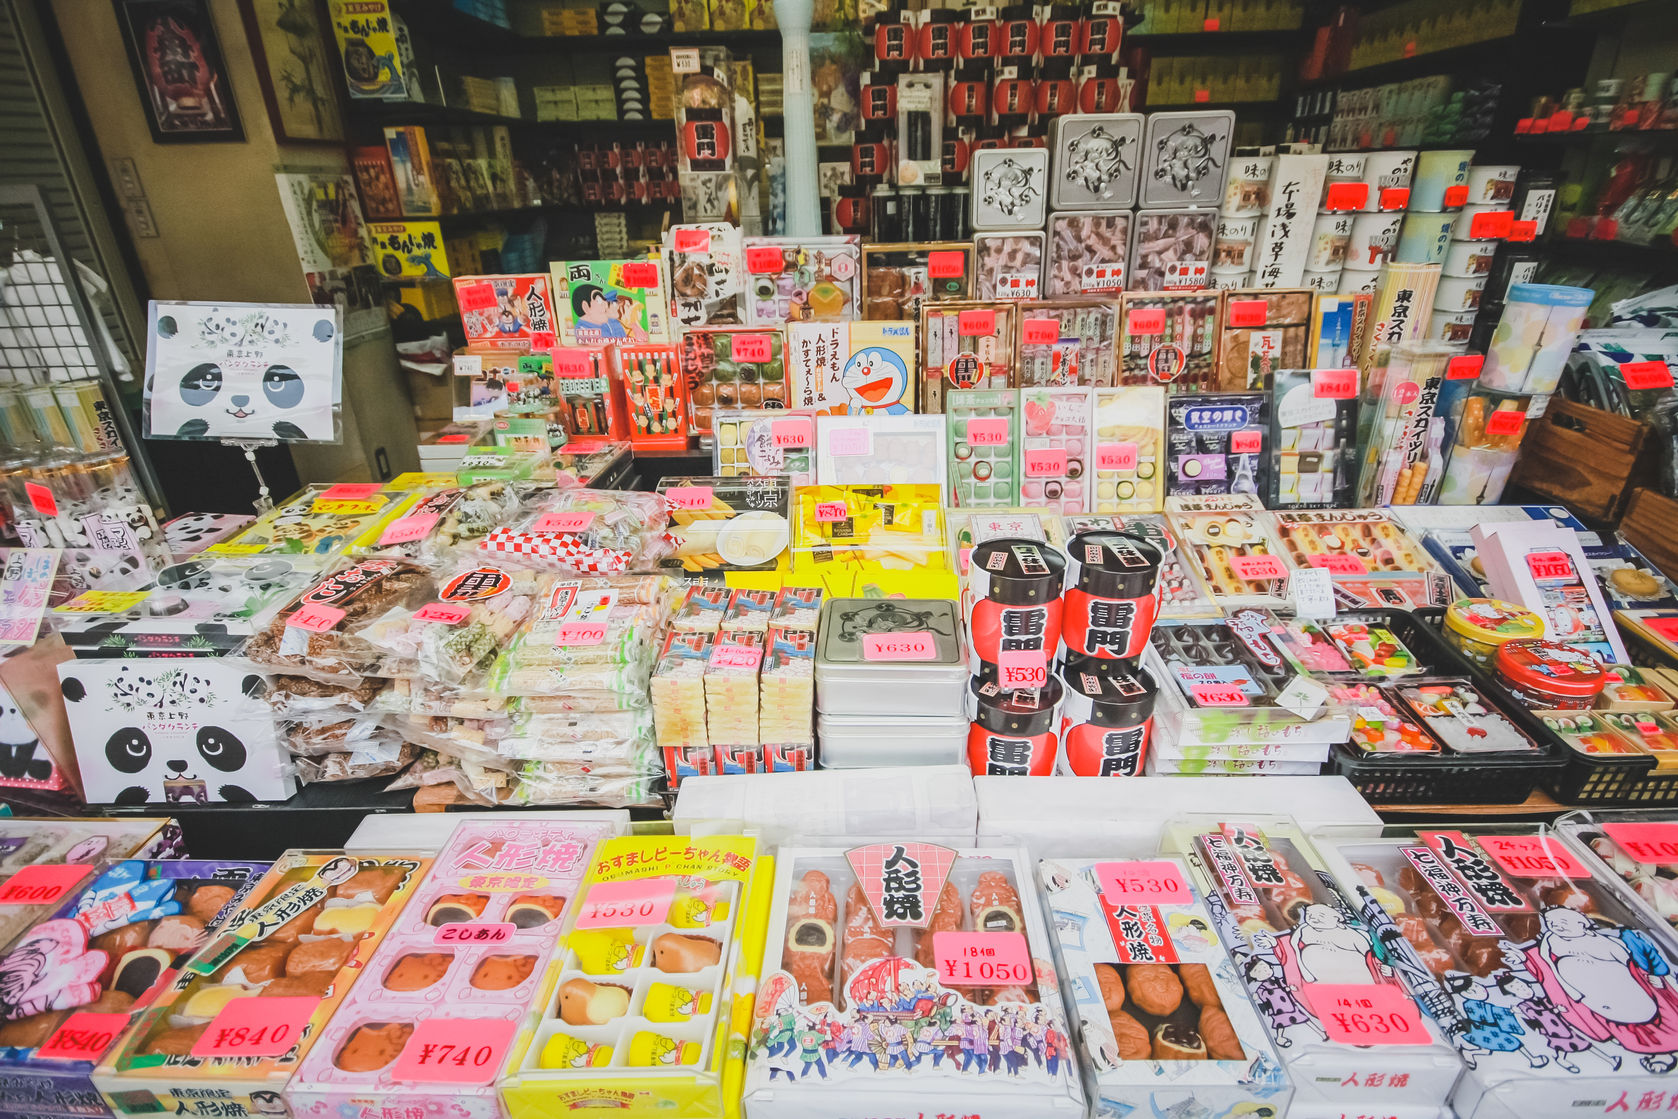 5 Tips when Buying an 'Omiyage' Souvenirs for your Coworkers in Japan